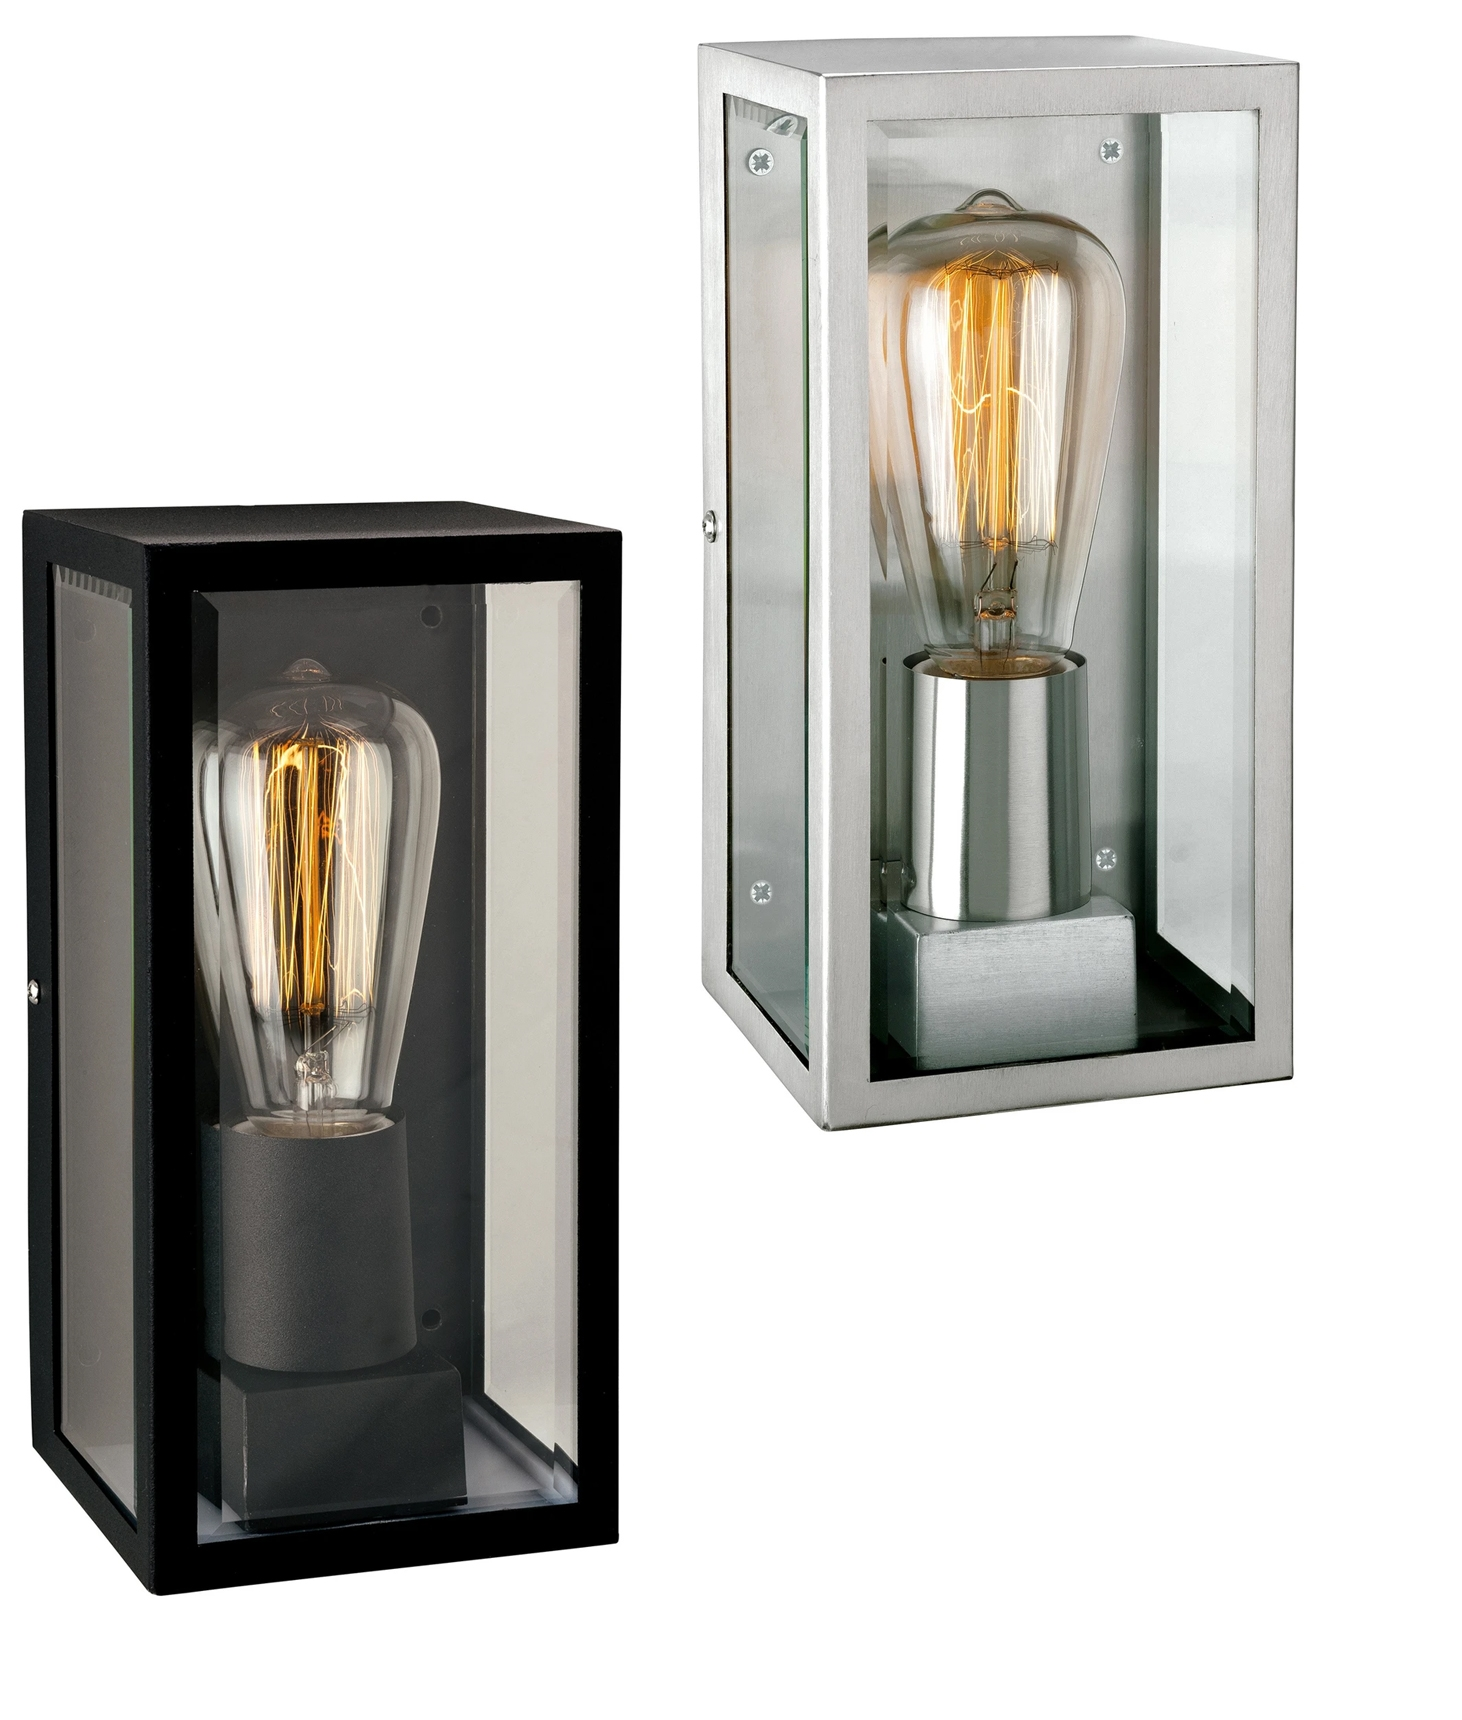 Image of: Outdoor Flush Mount Light Clear Glass Ip44 Rated